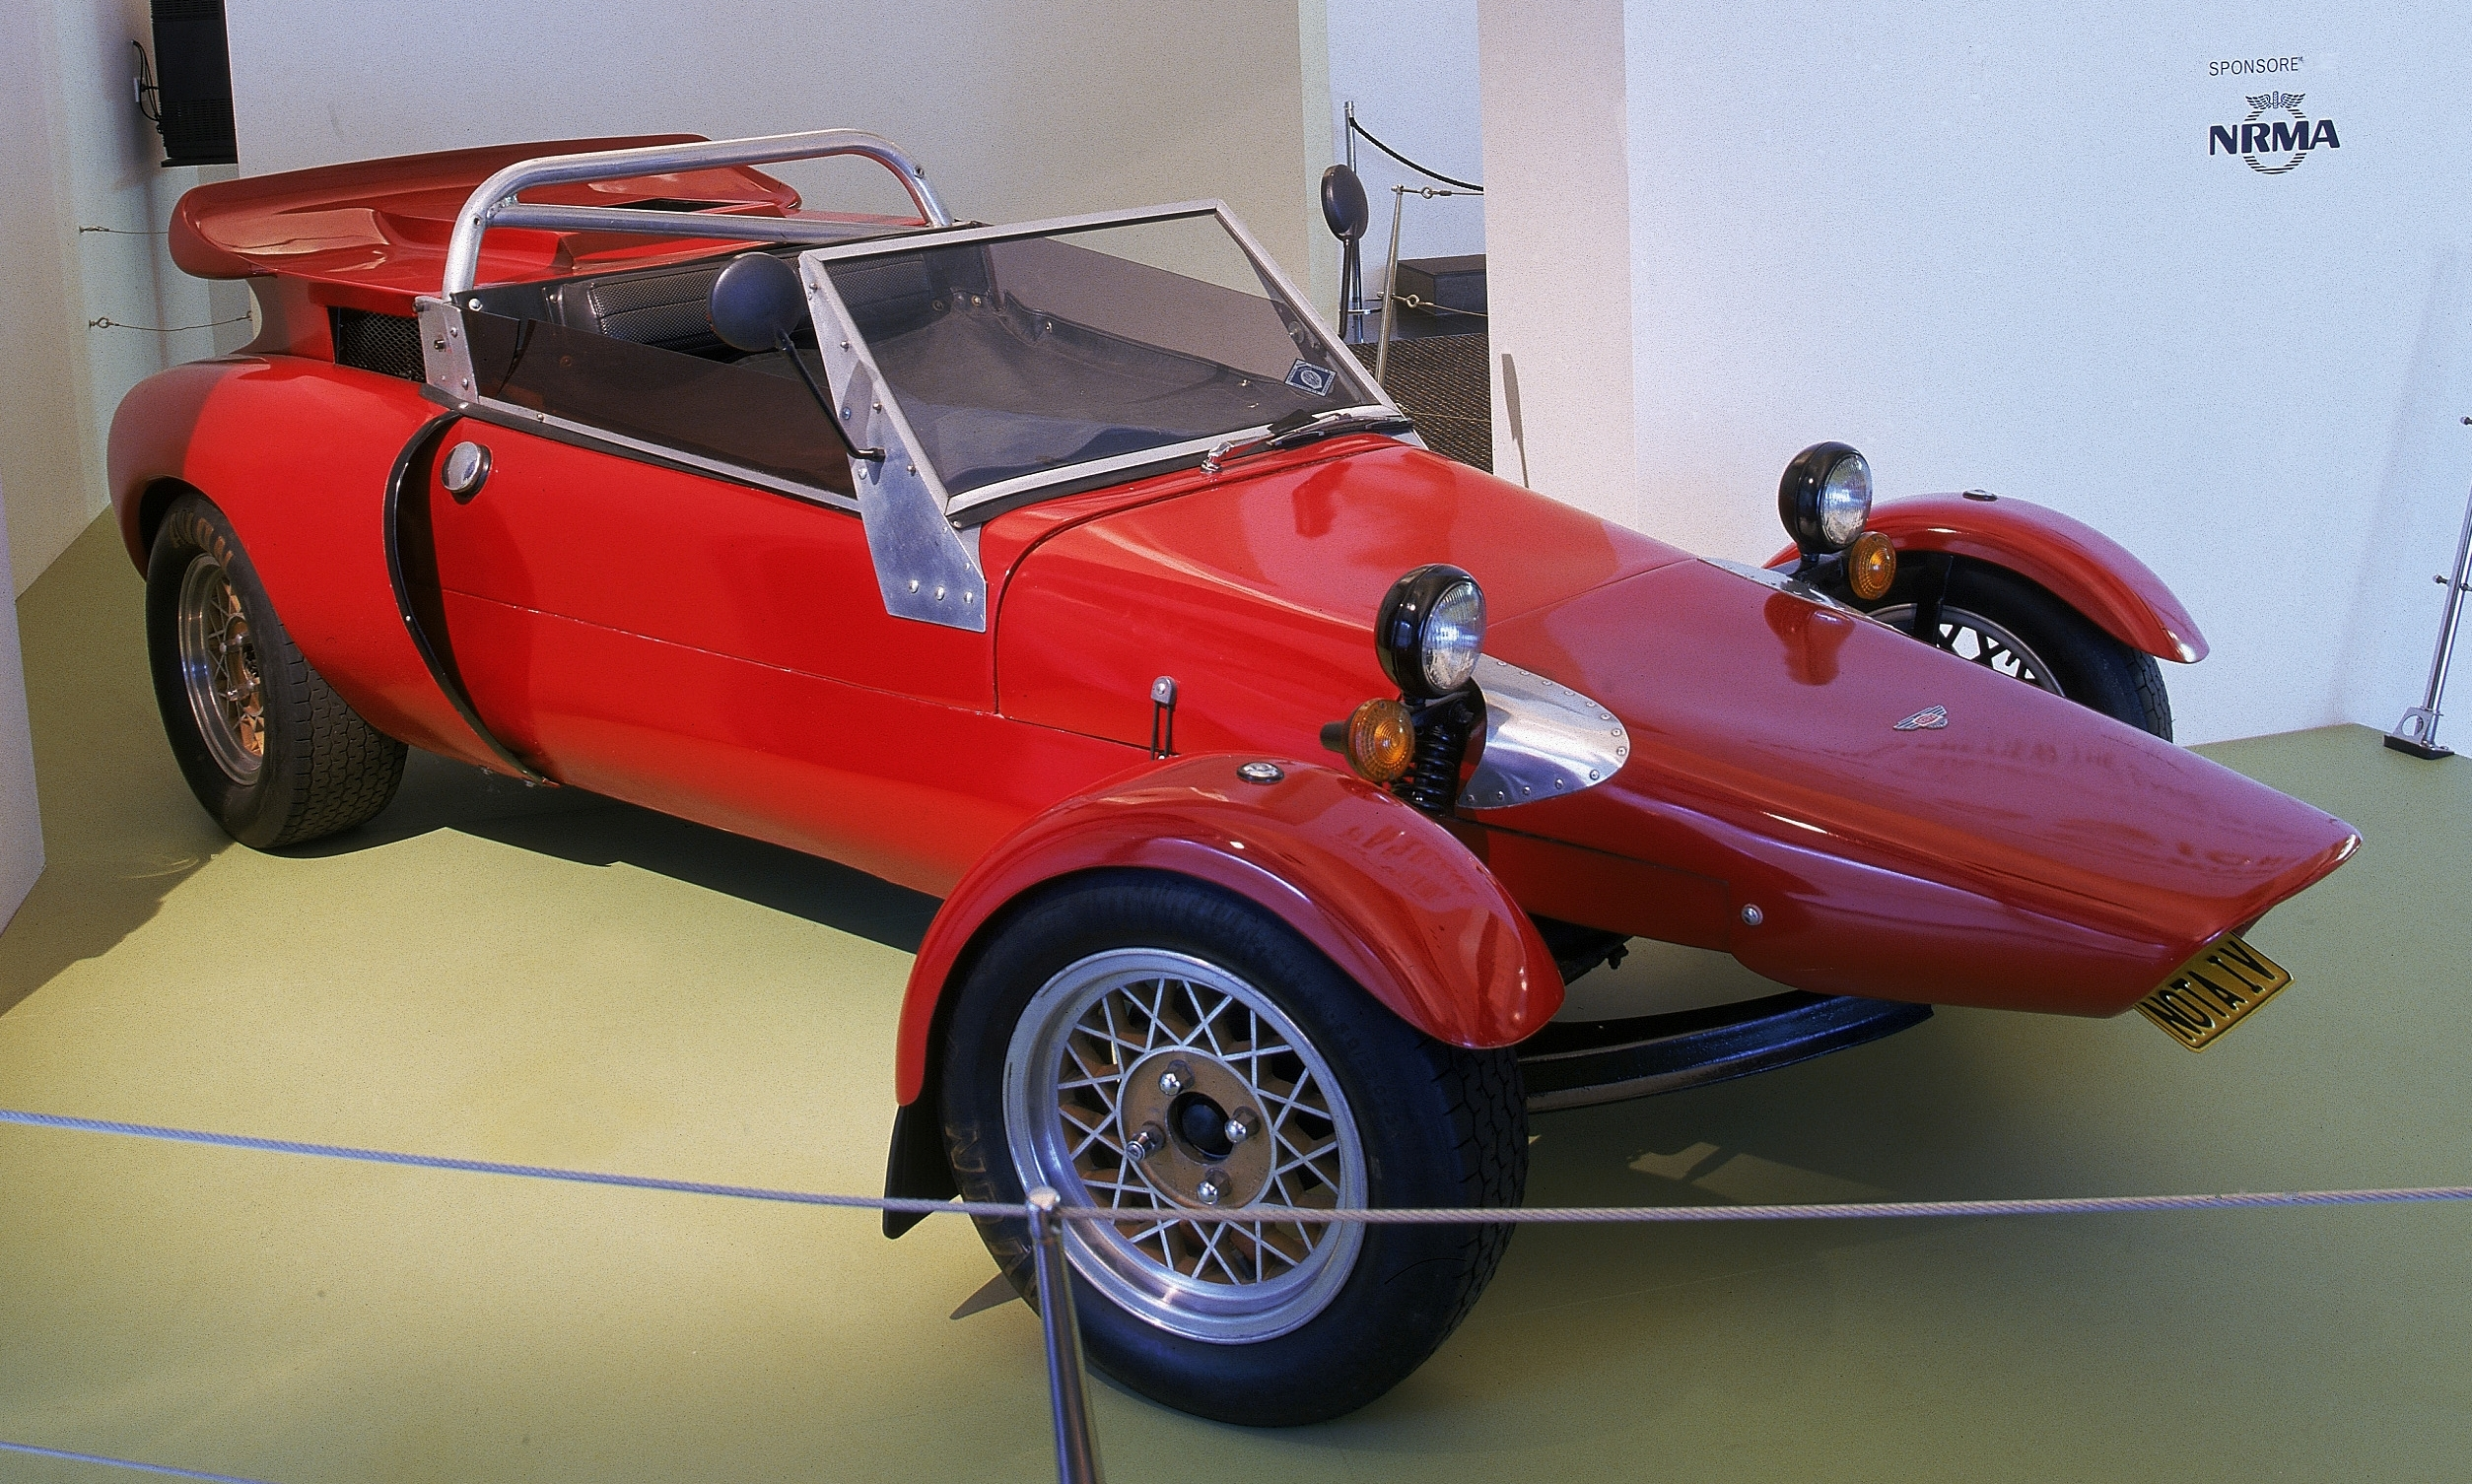 The Nota Fang – an Australian-made sports car – Inside the Collection